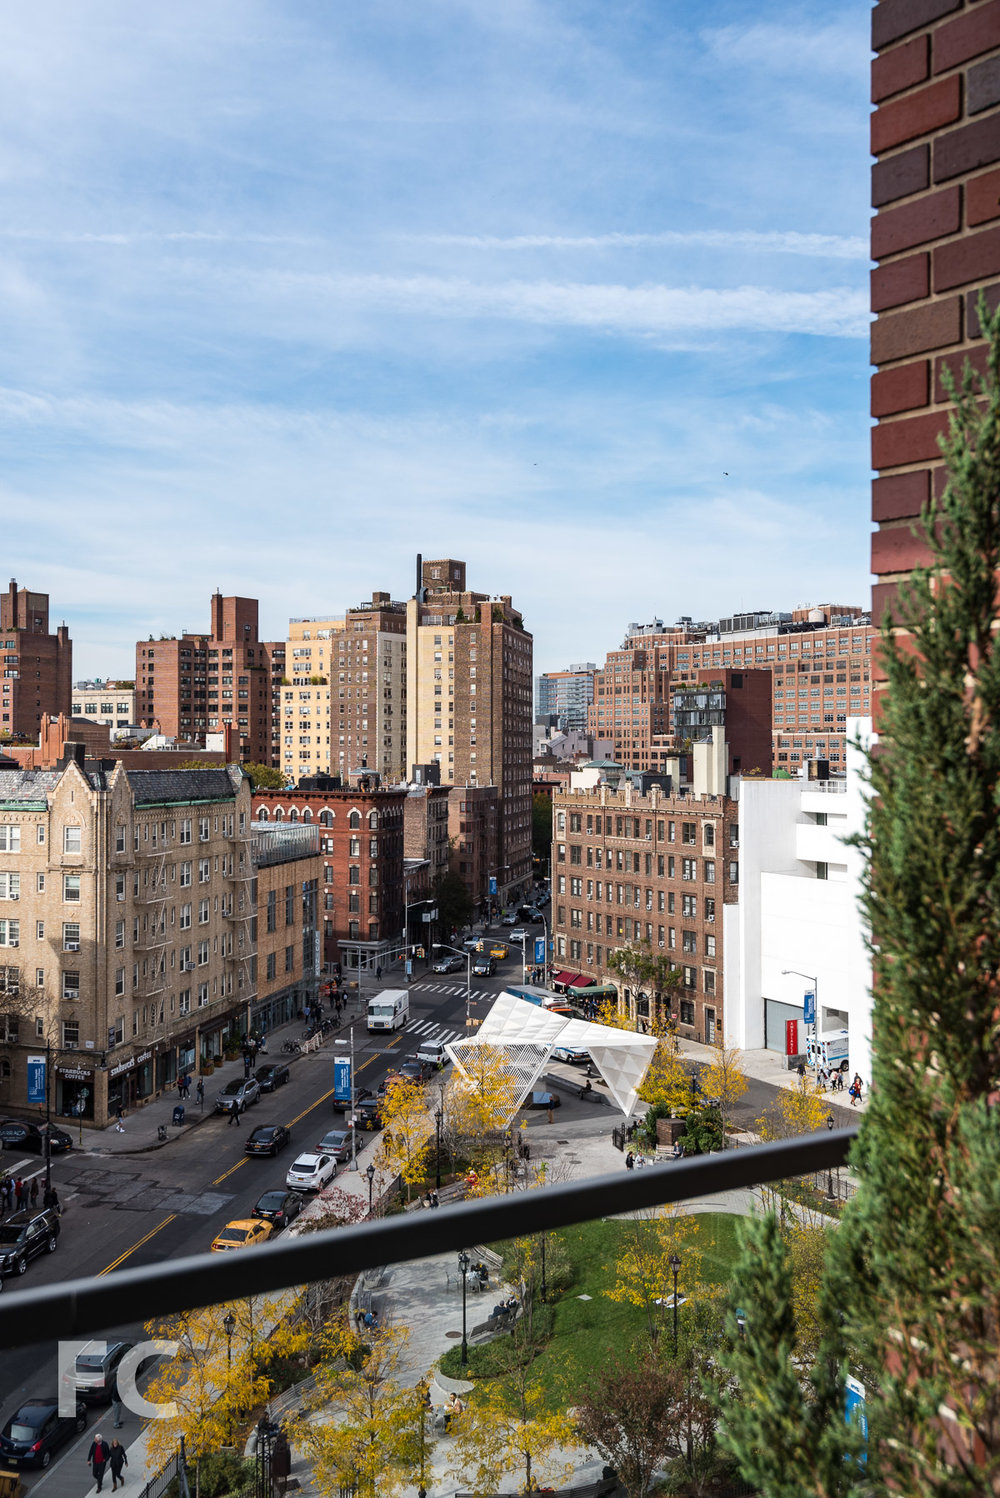 View of St. Vincent's Triangle Park and the New York City AIDS Memorial from a terrace.